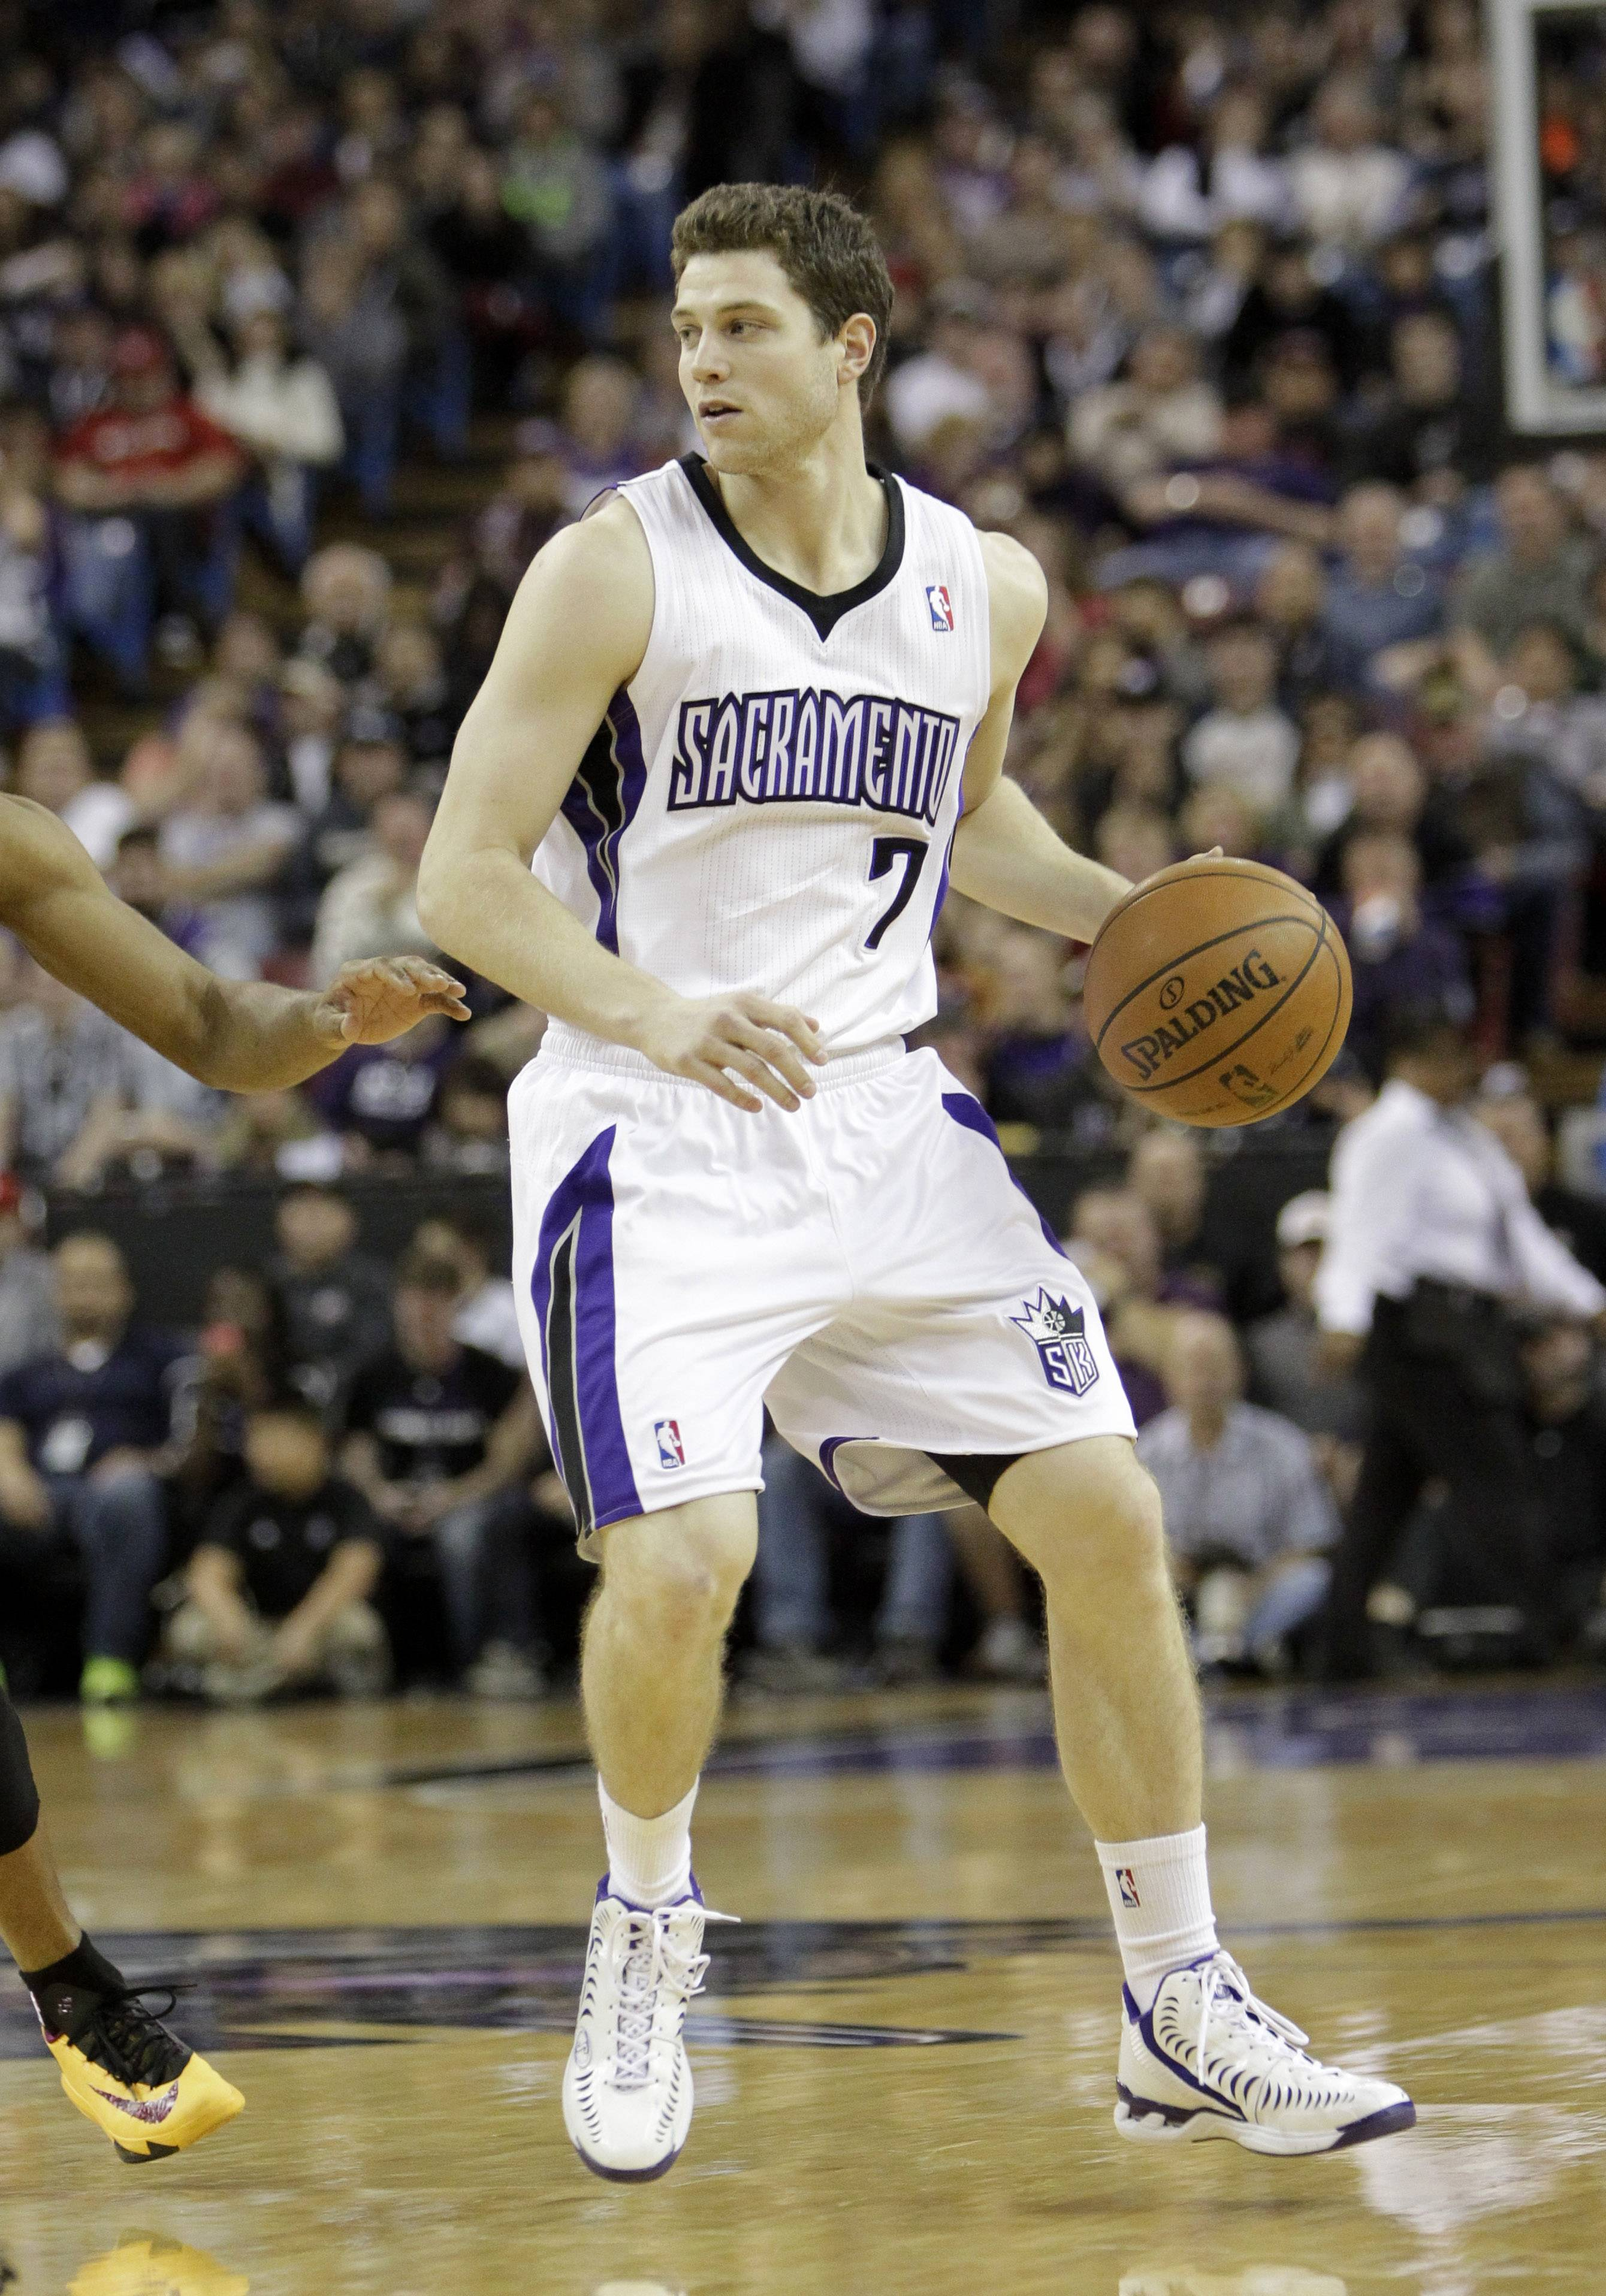 Waived Thursday by Sacramento, guard Jimmer Fredette could soon be wearing a Bulls uniform if he clears waivers, according to Mike McGraw.